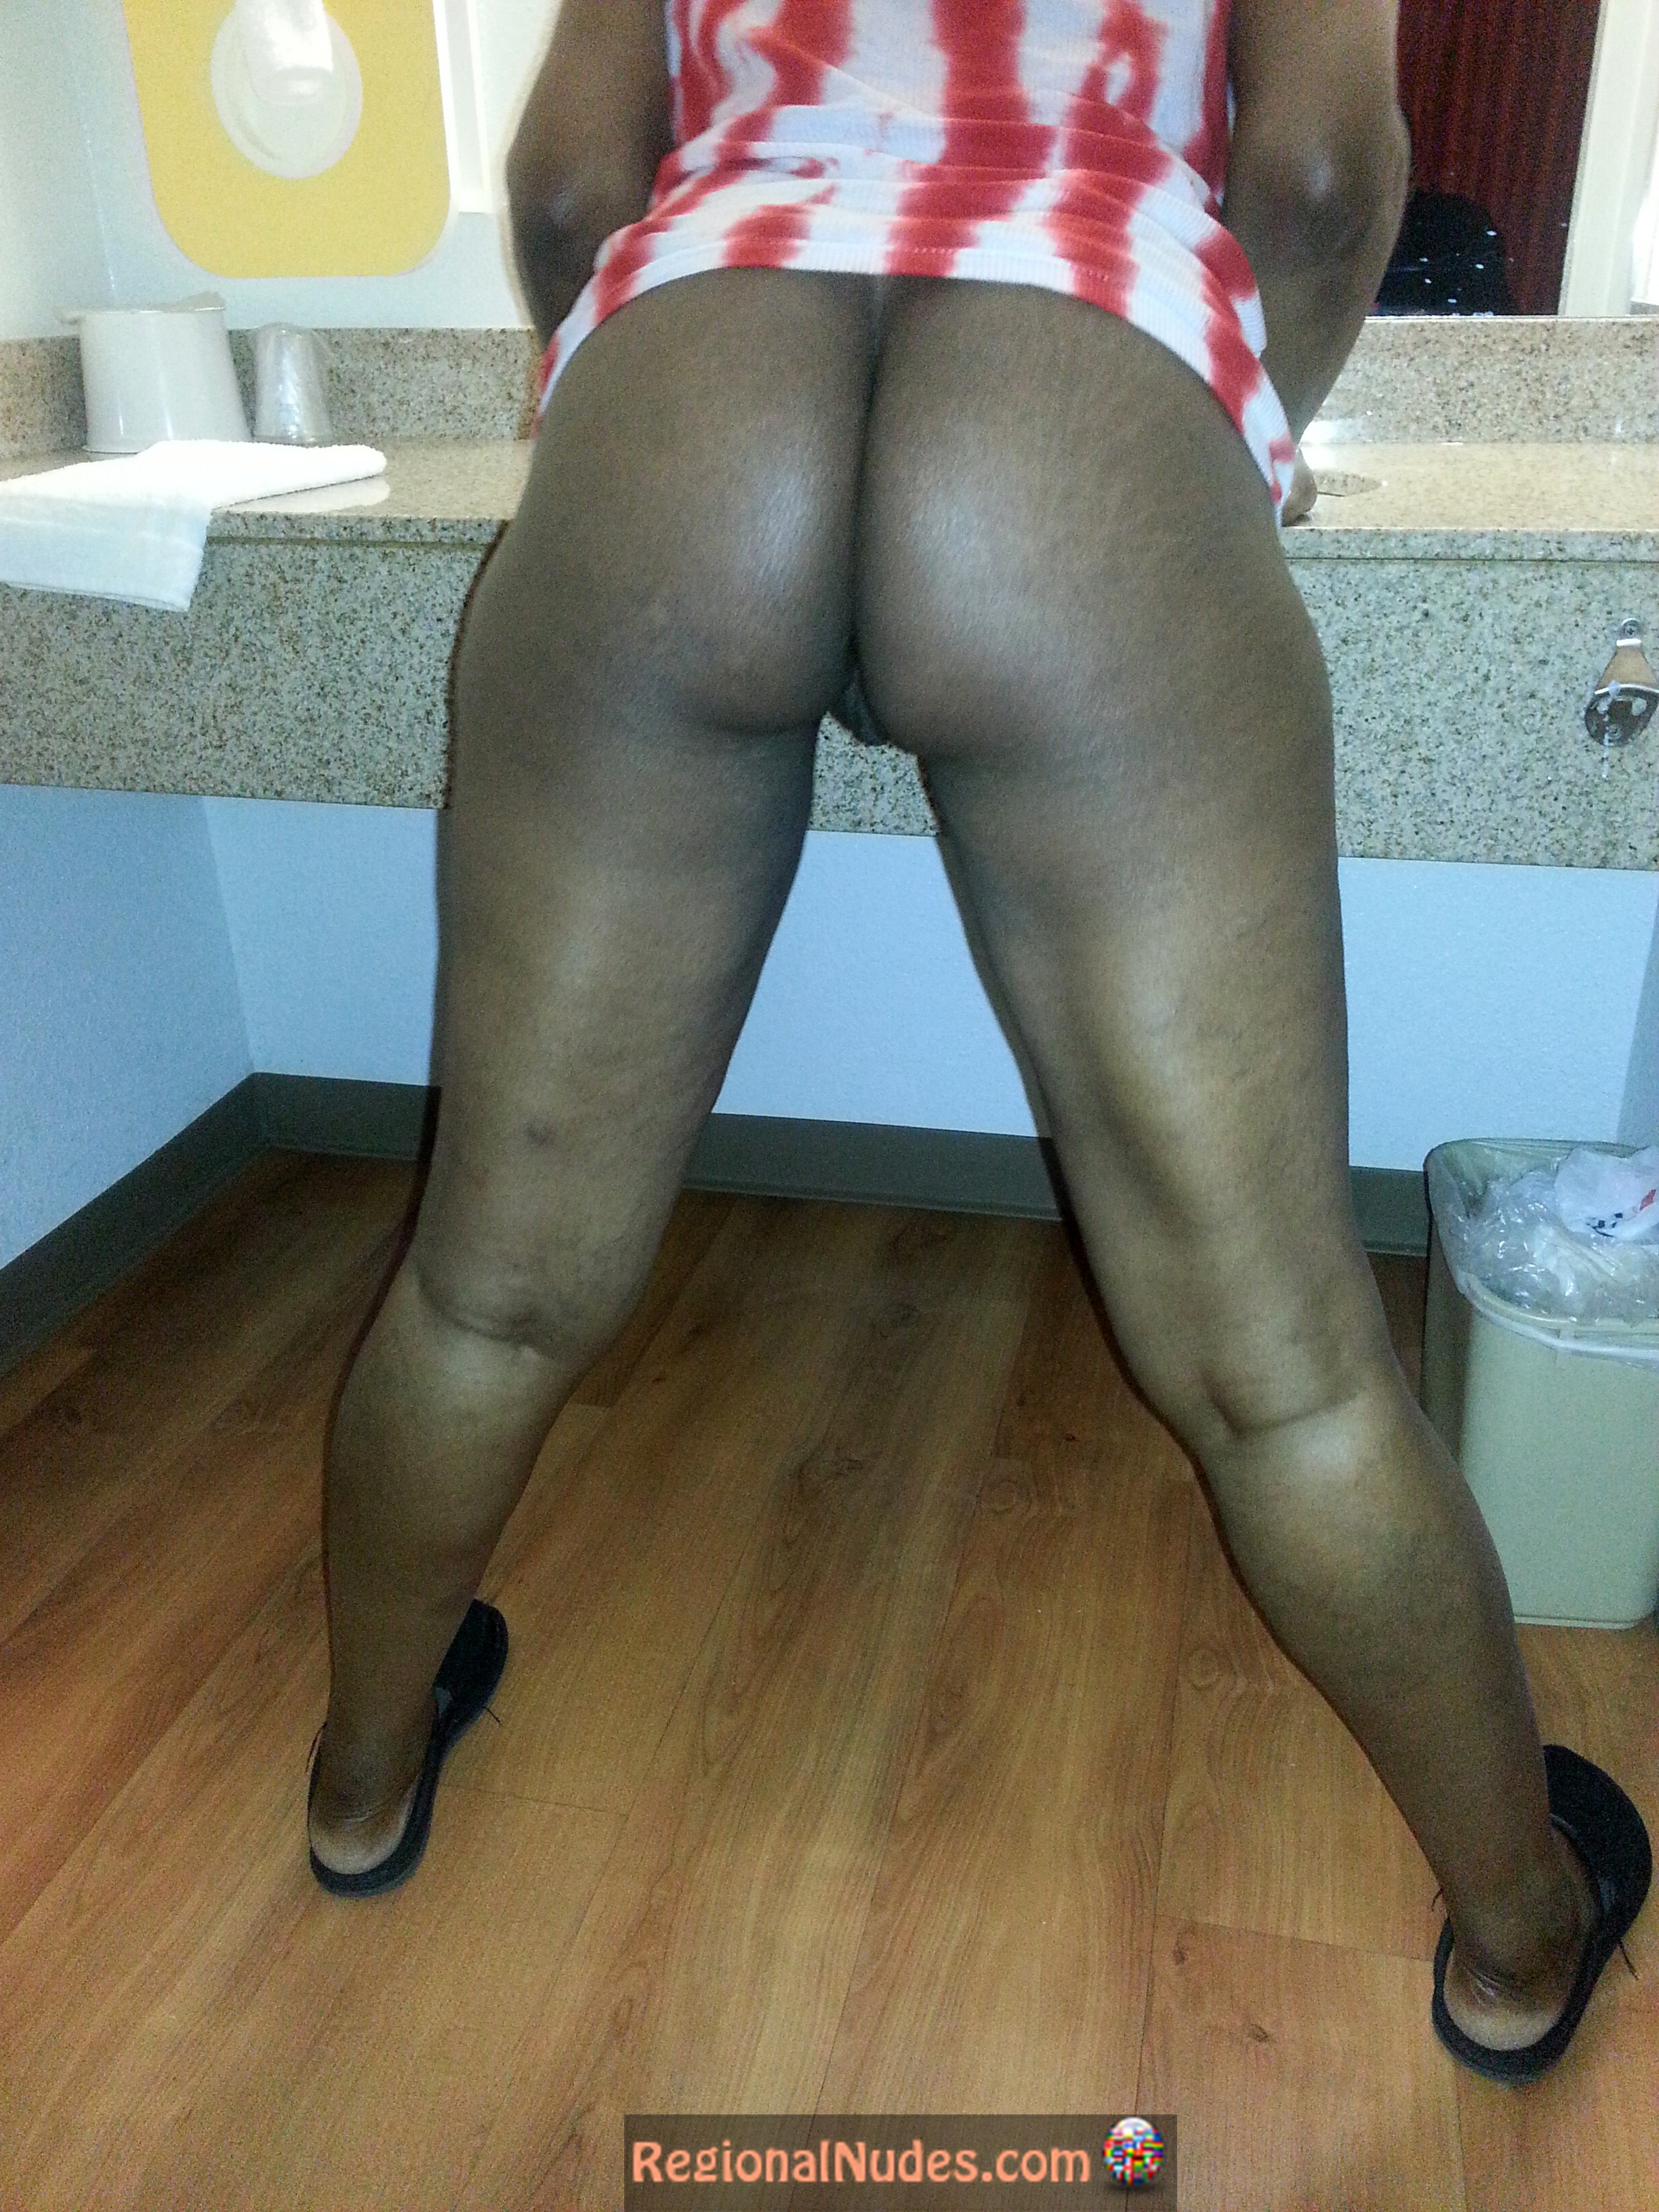 Black Jamaican Woman Buttocks Bent Over  Regional Nude -4414